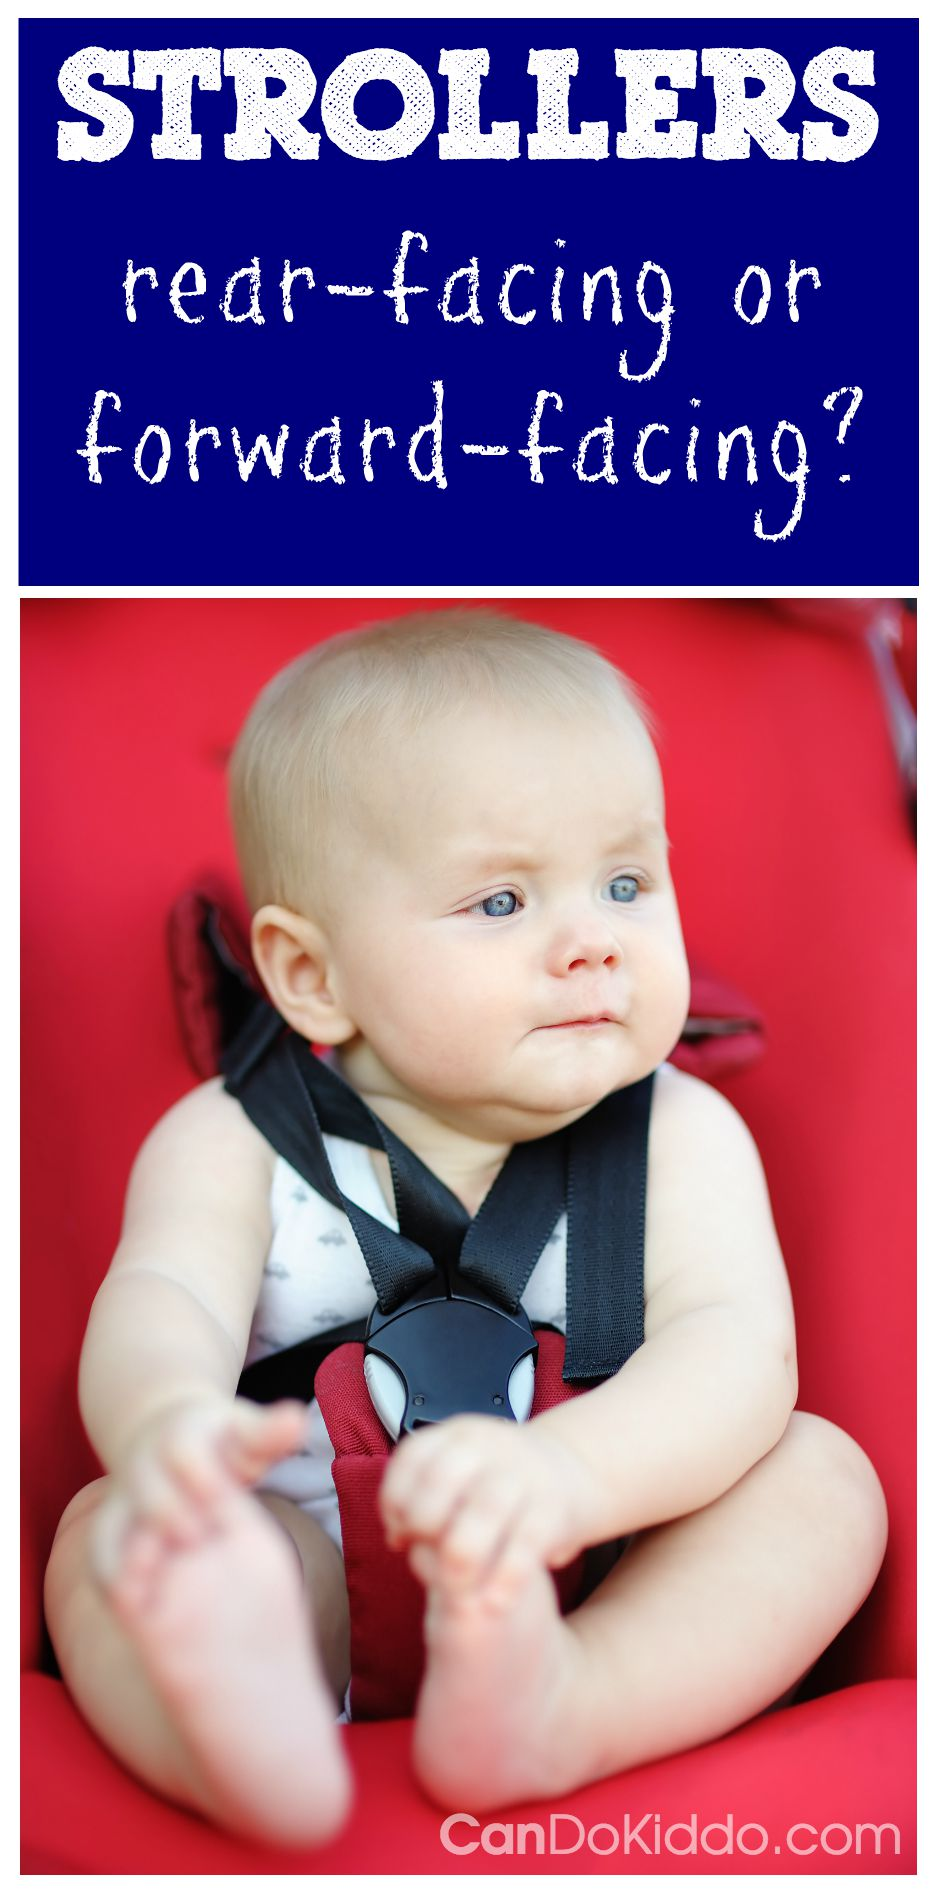 Stroller buying guide - which is best for baby. CanDoKiddo.com